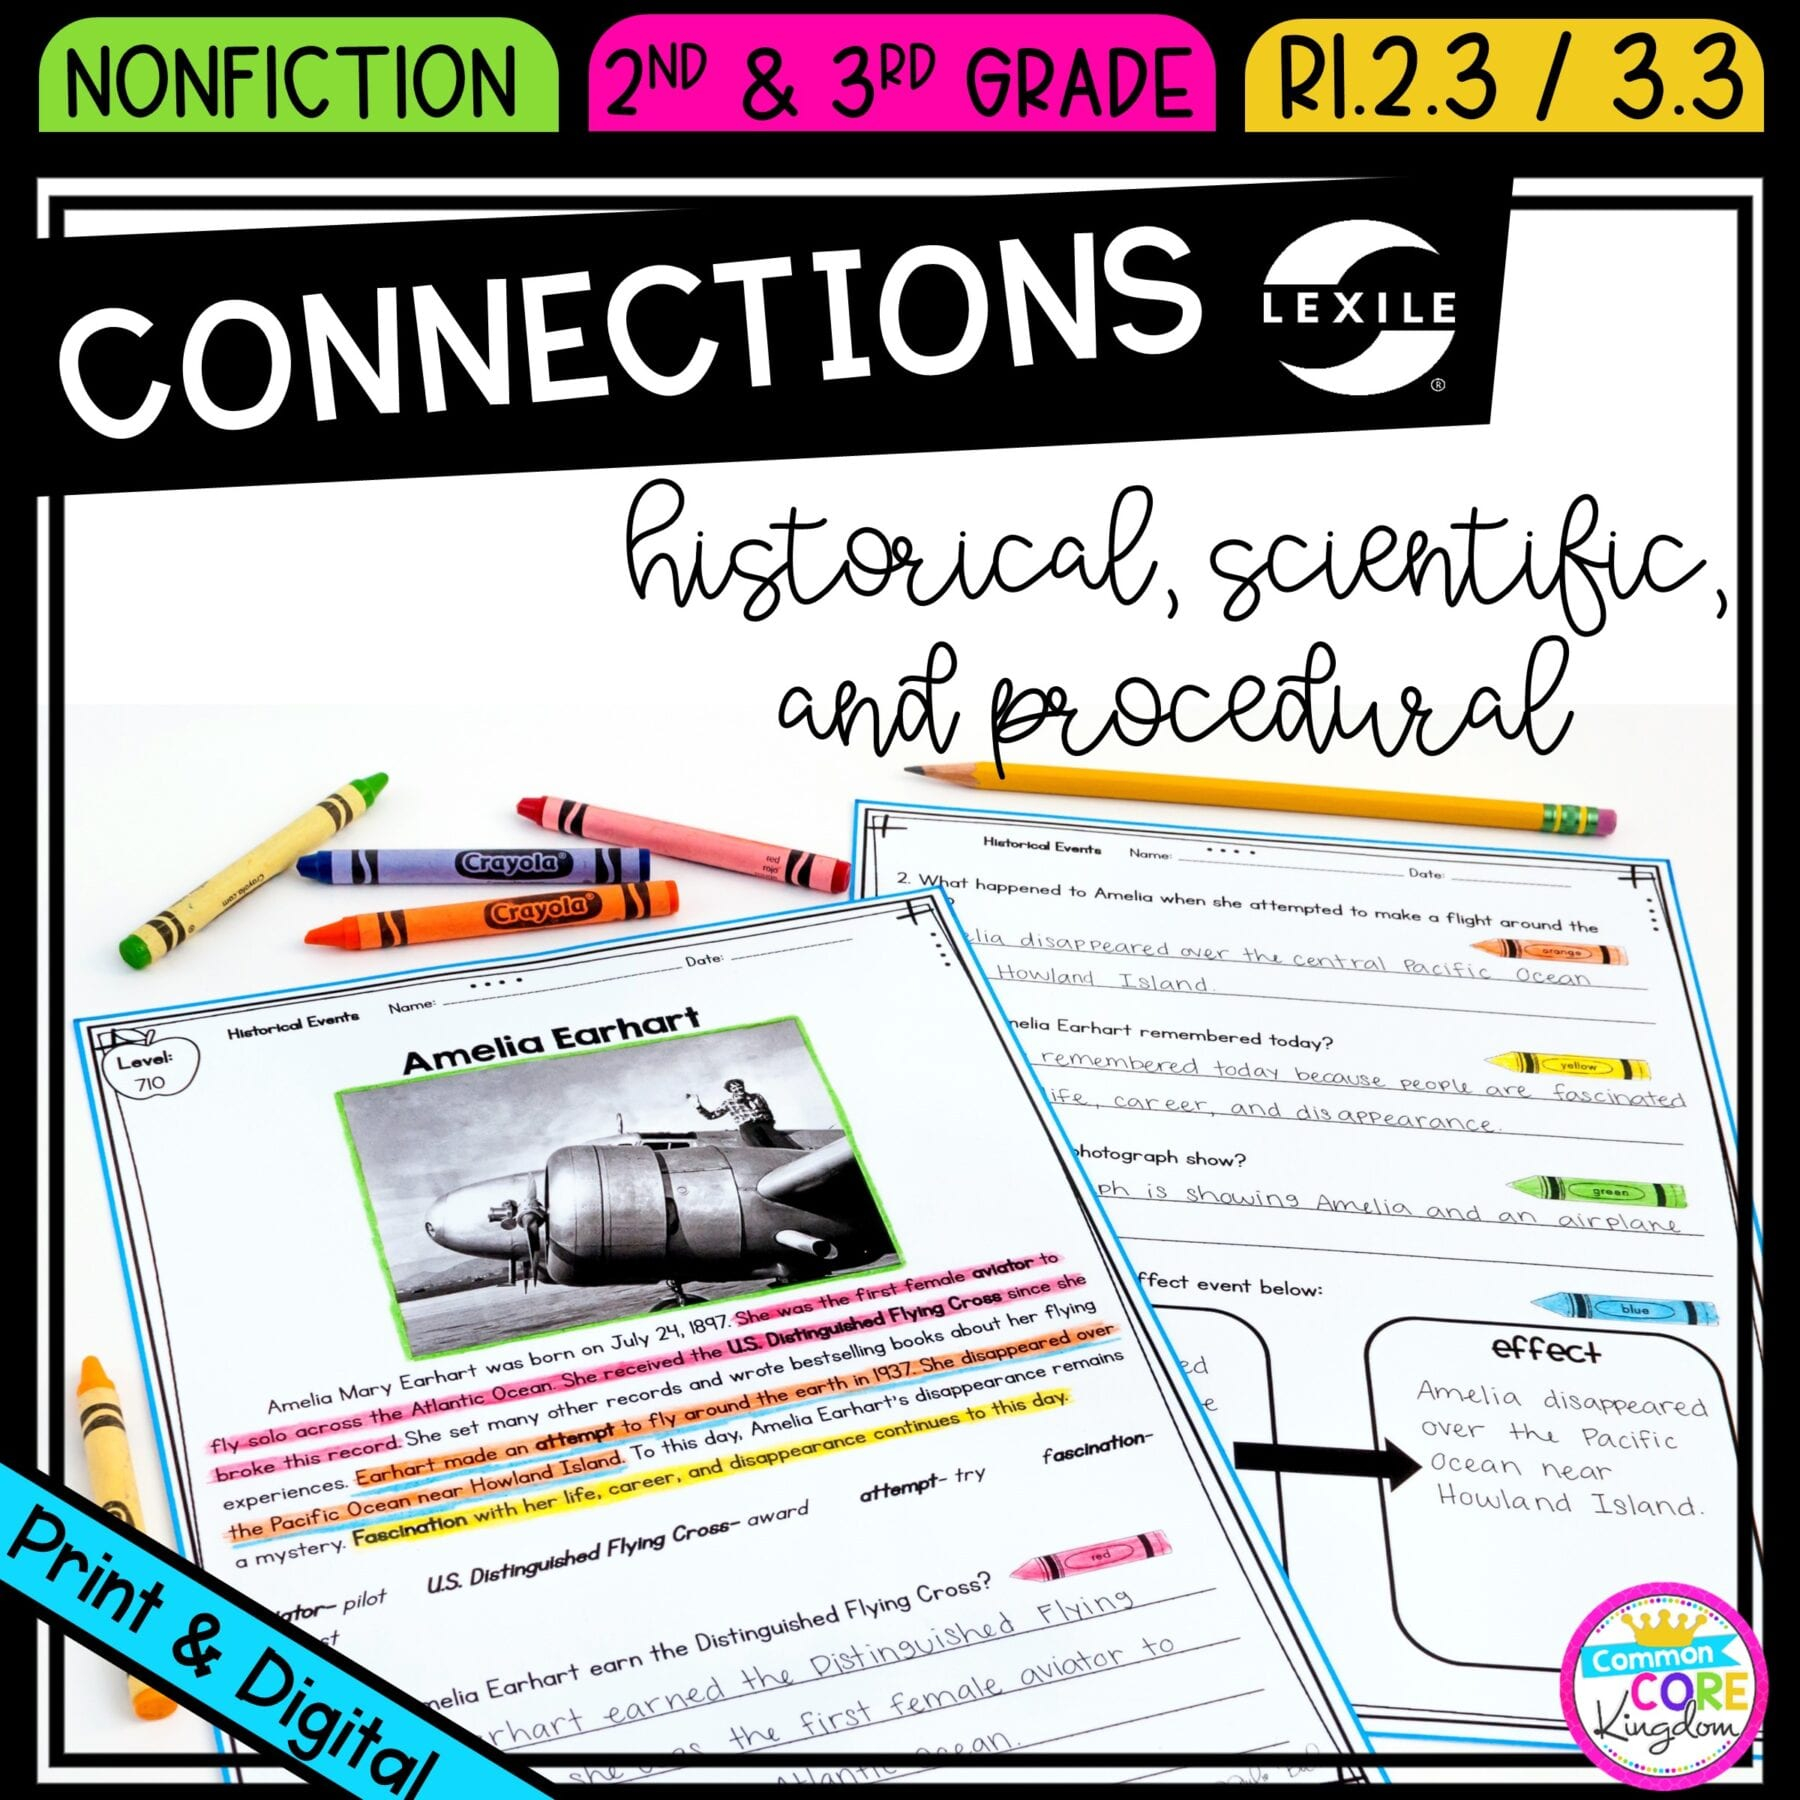 Making Connections - Ri.2.3 & Ri.3.3 Printable & Digital Google Slides  Distance Learning Pack